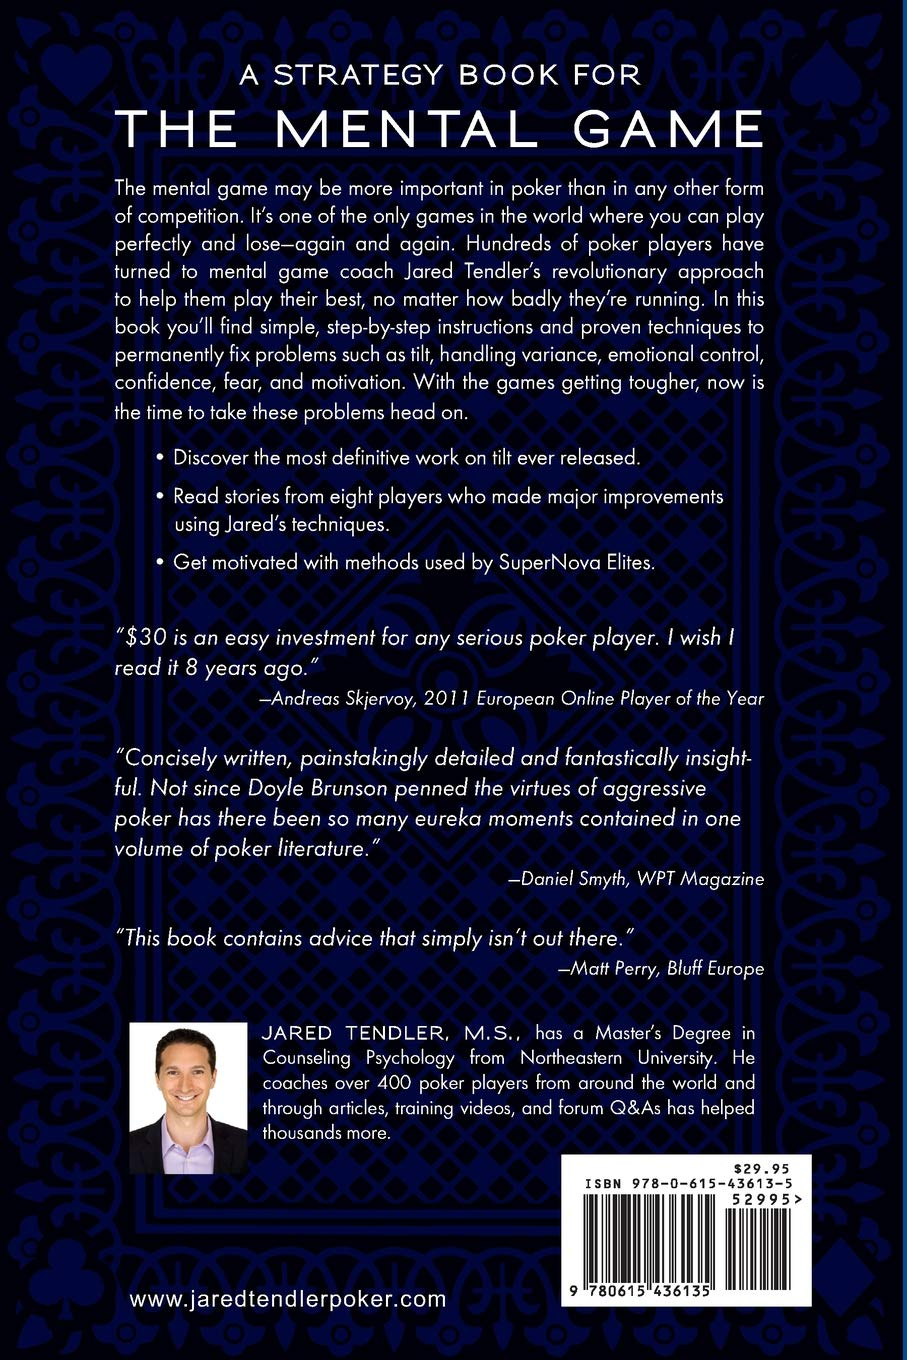 Mental of poker download the game ebook